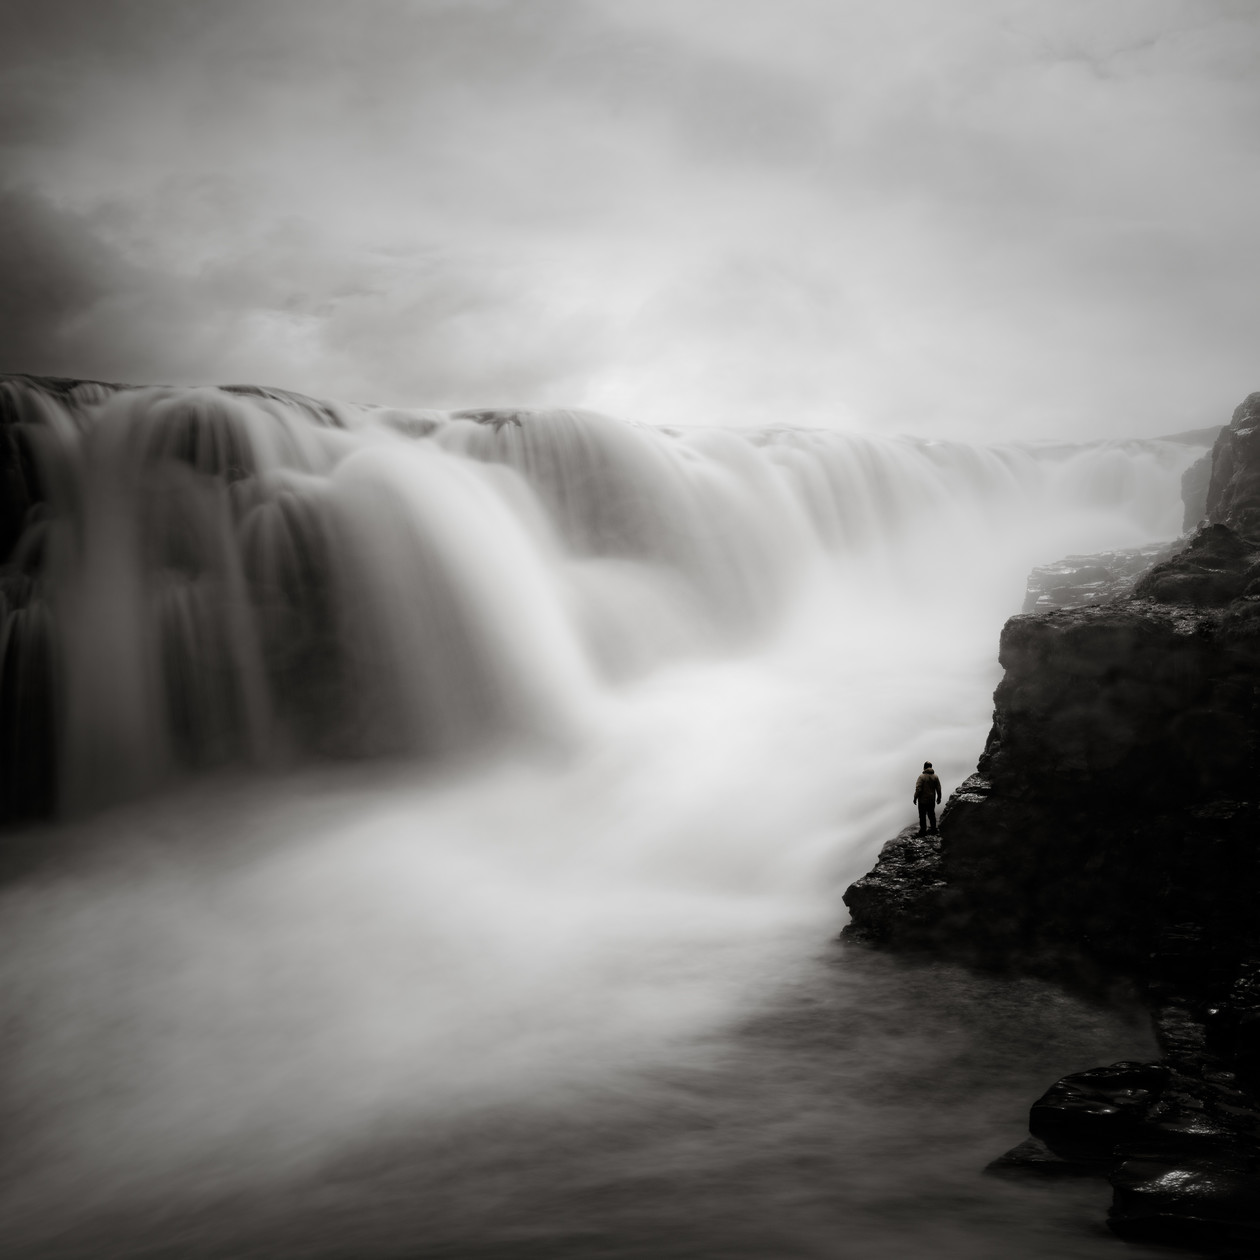 Figure and Waterfall, Iceland (2018) by Jeffrey Conley